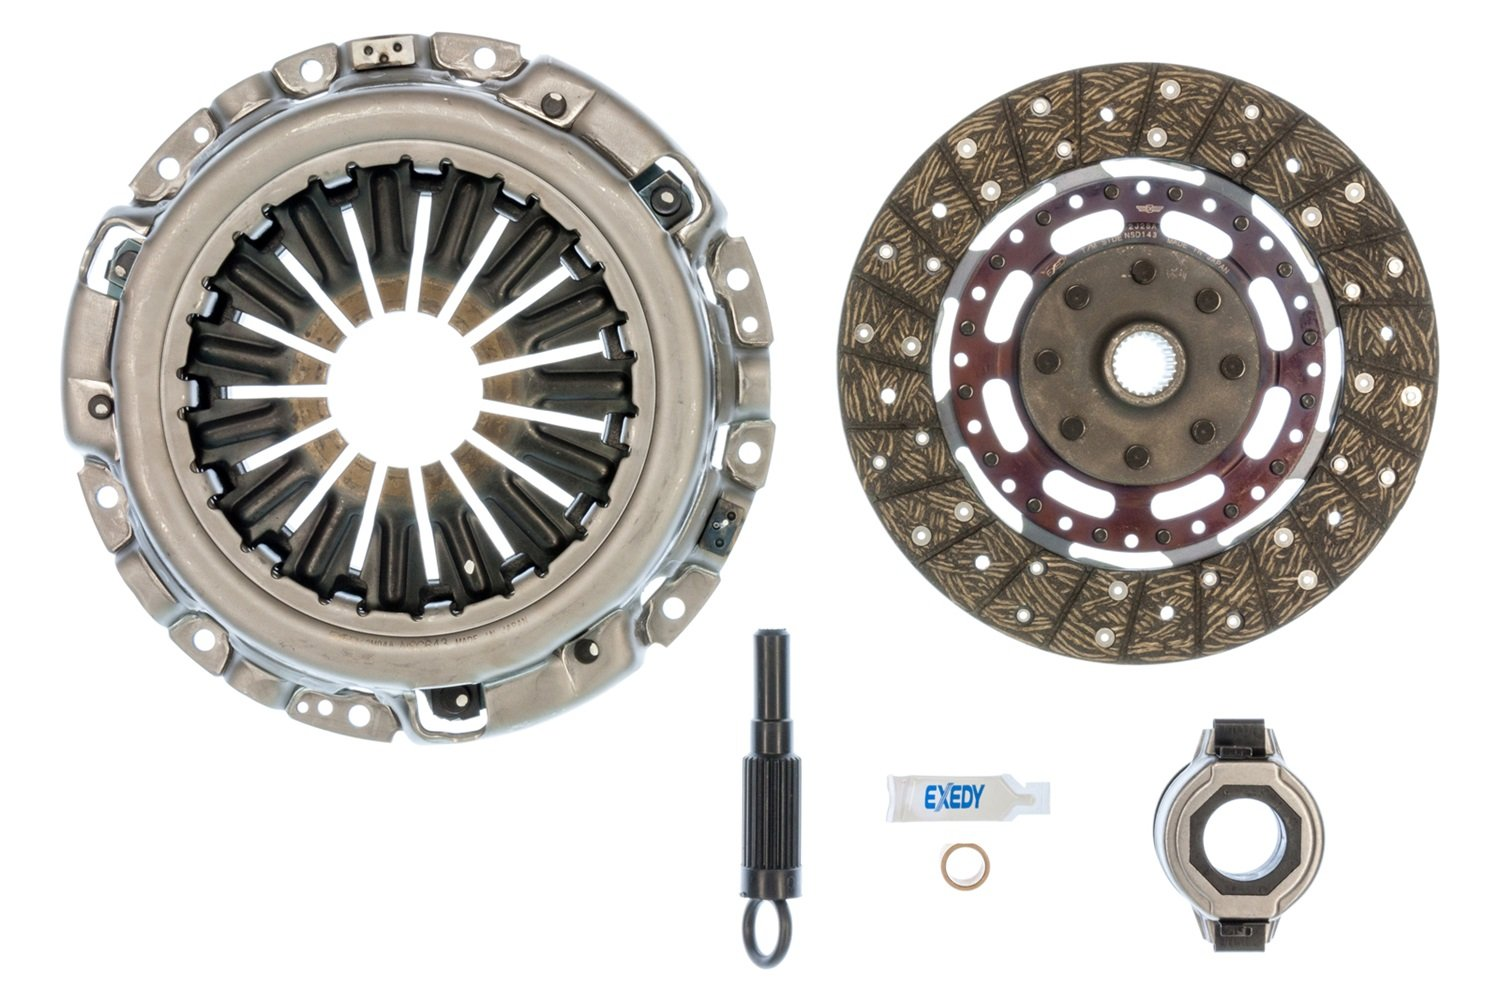 EXEDY NSK1002 OEM Replacement Clutch Kit EXEDY Racing Clutch